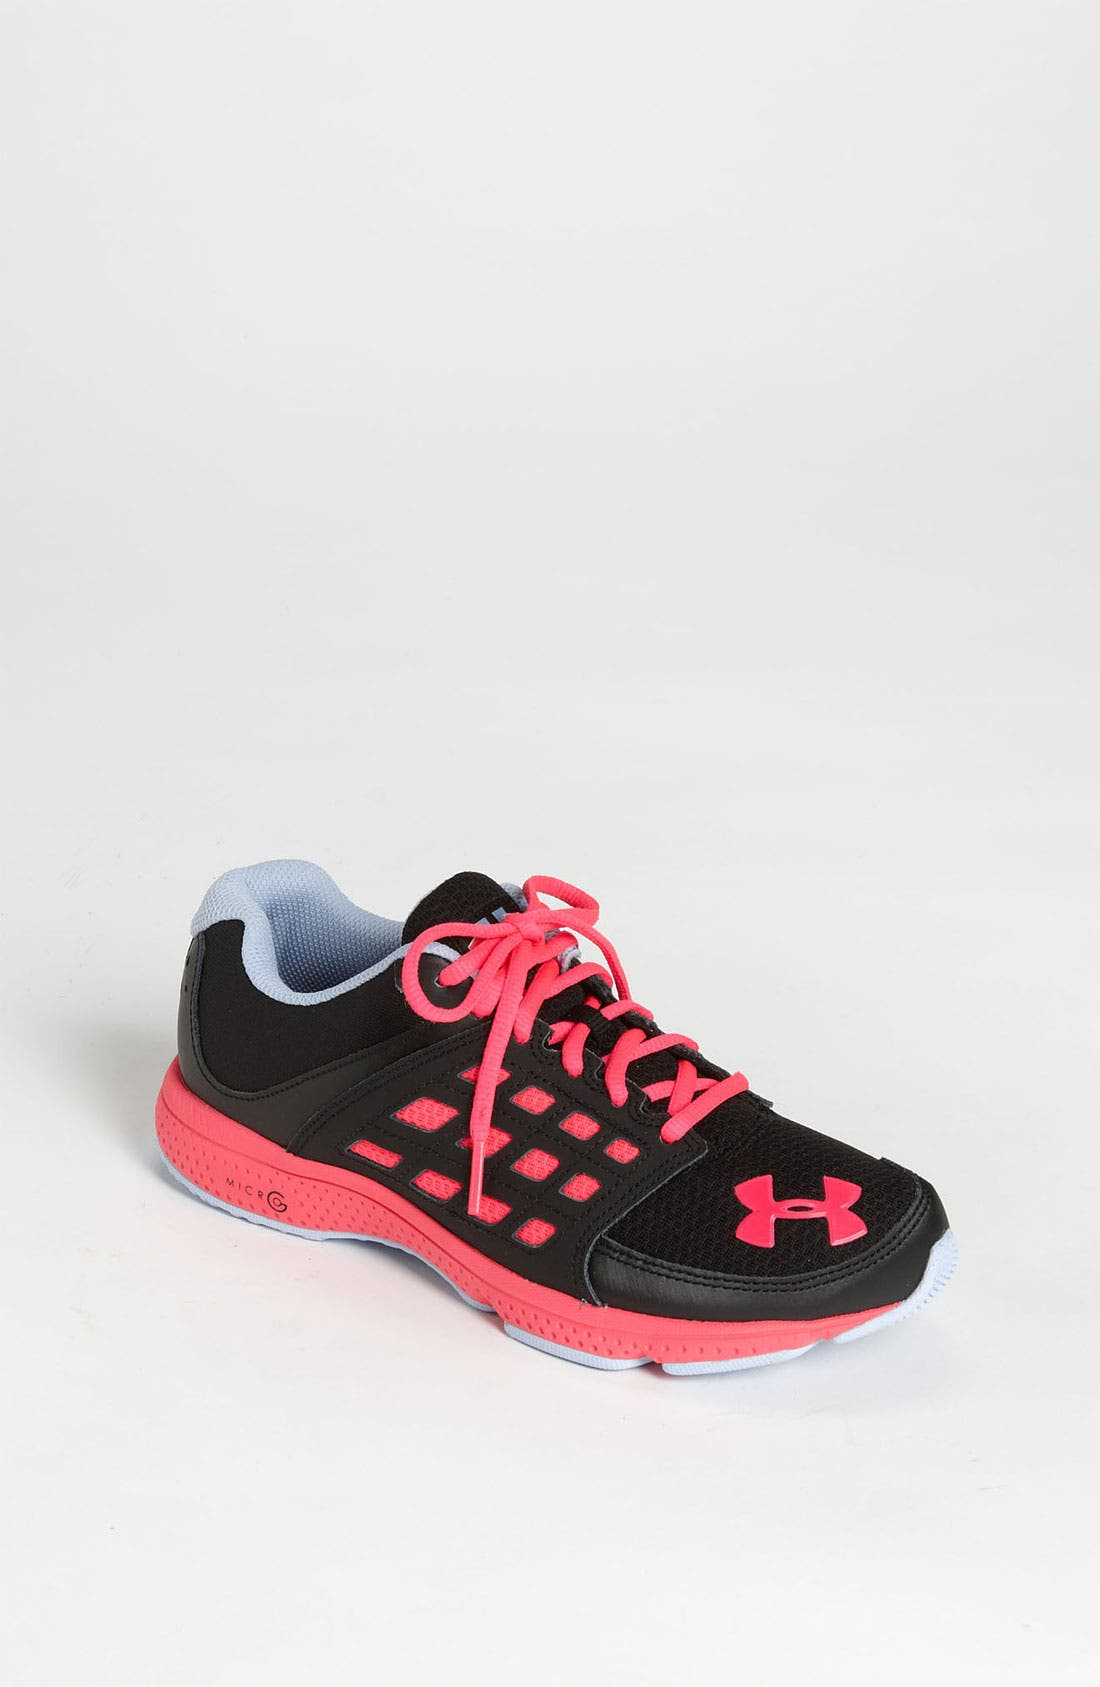 Alternate Image 1 Selected - Under Armour 'Micro G® Connect' Sneaker (Toddler, Little Kid & Big Kid)